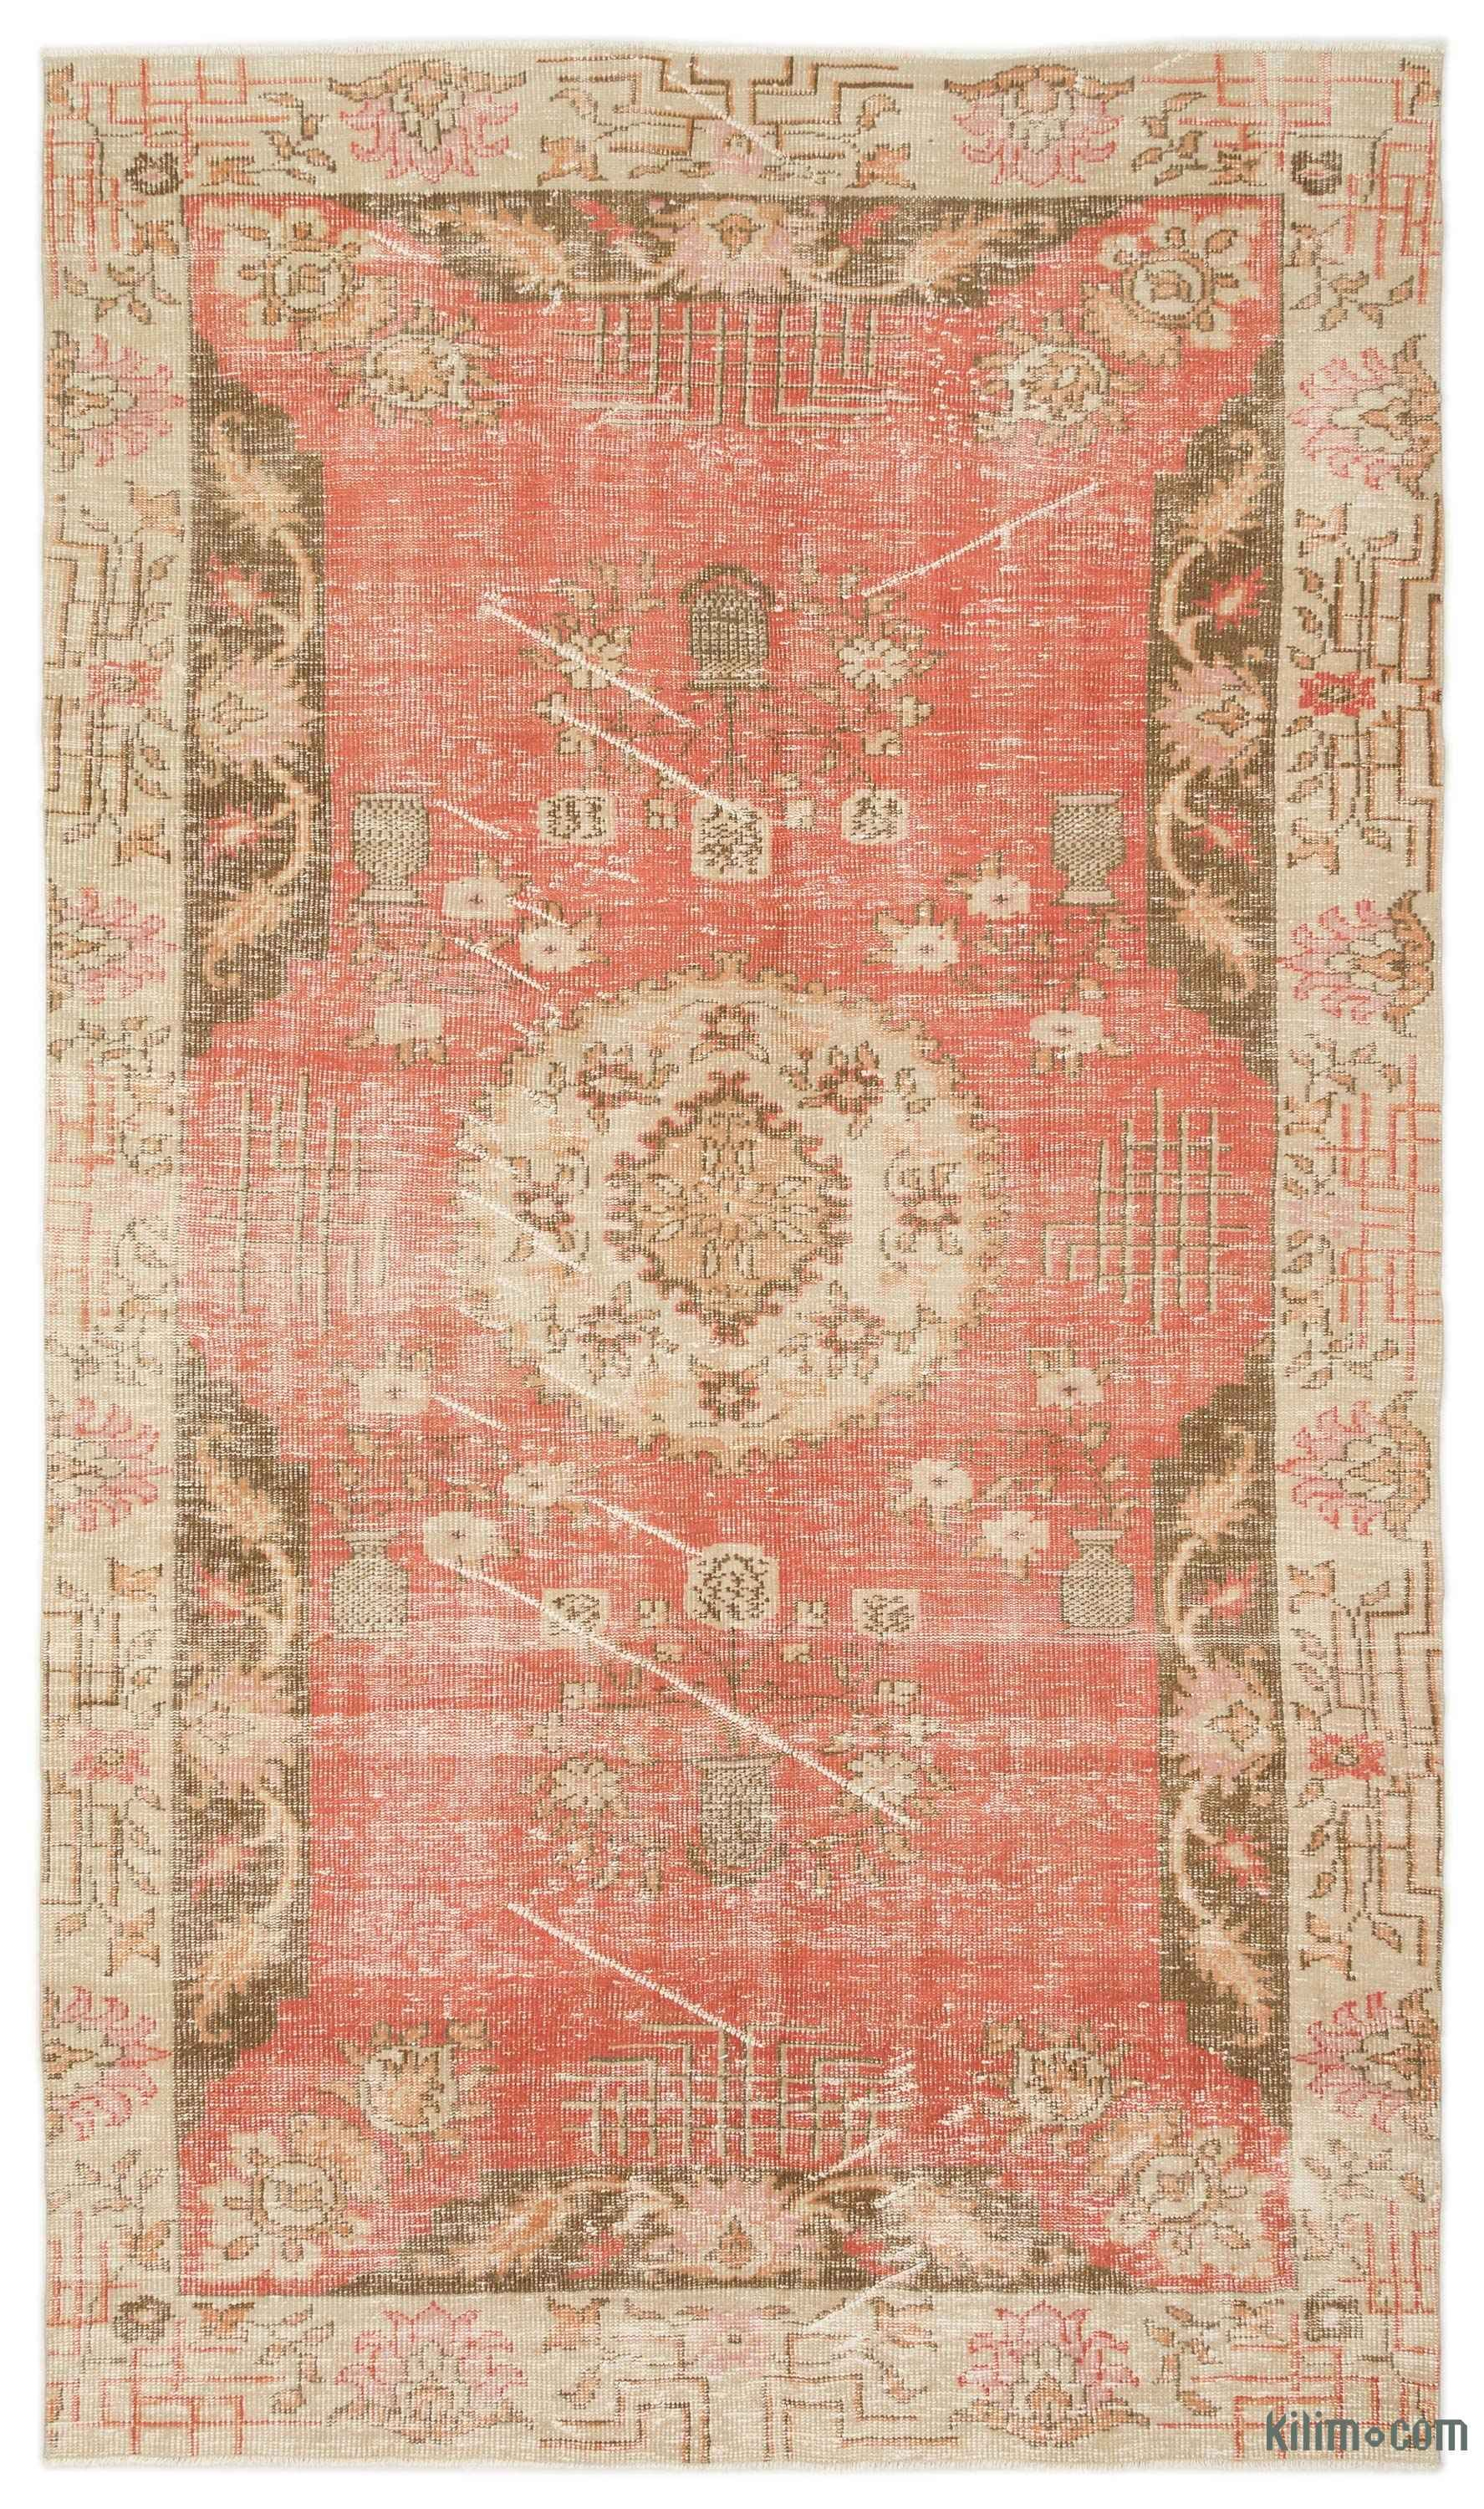 Turkish Vintage Area Rug 5 9 X 10 1 175 Cm X 307 Cm Rugs